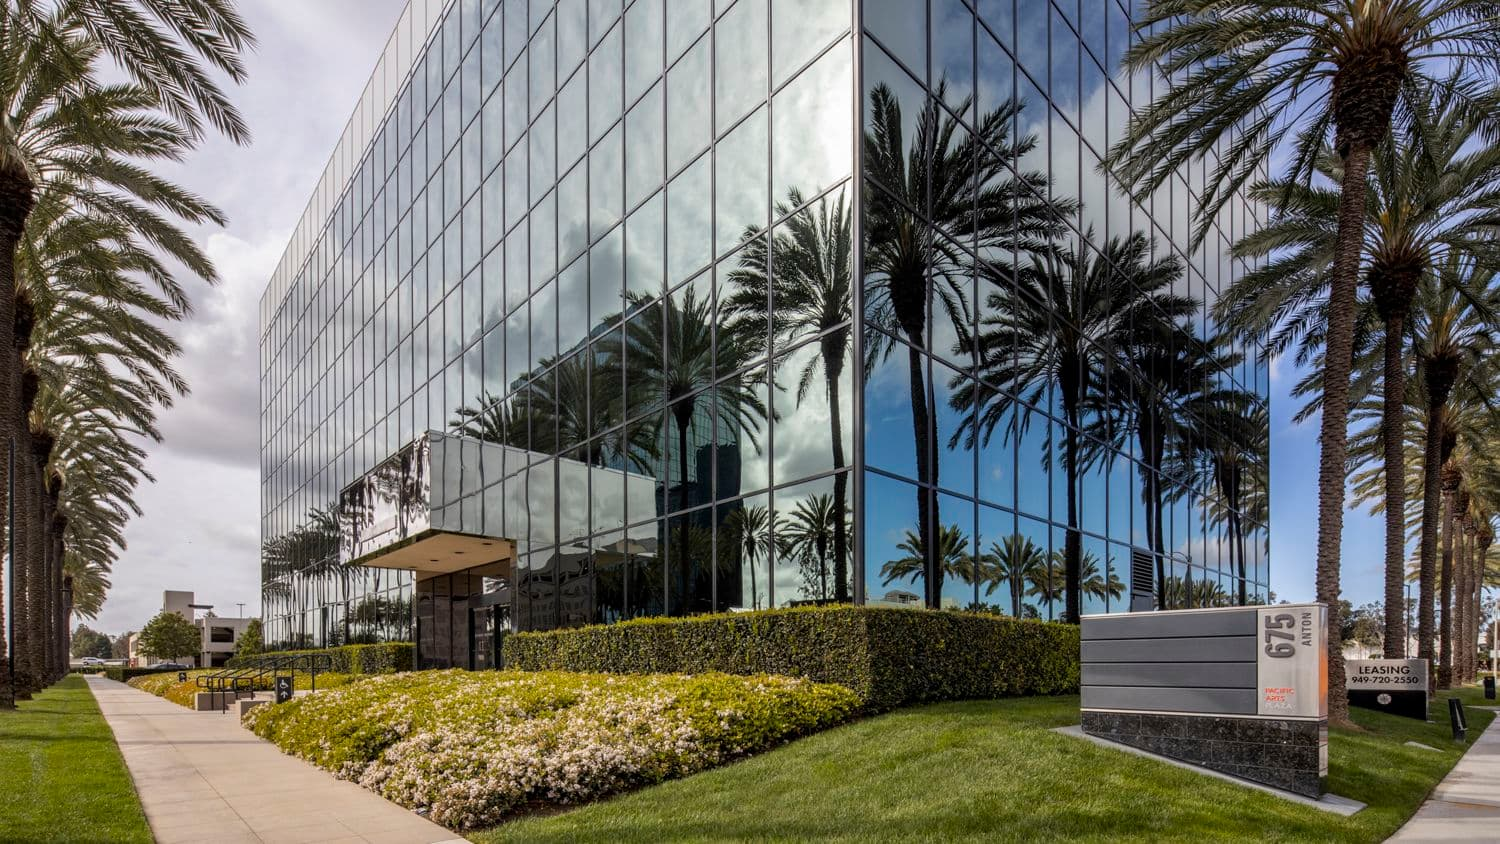 Exterior view of 675 Anton Blvd at Pacific Arts Plaza in Costa Mesa, California.